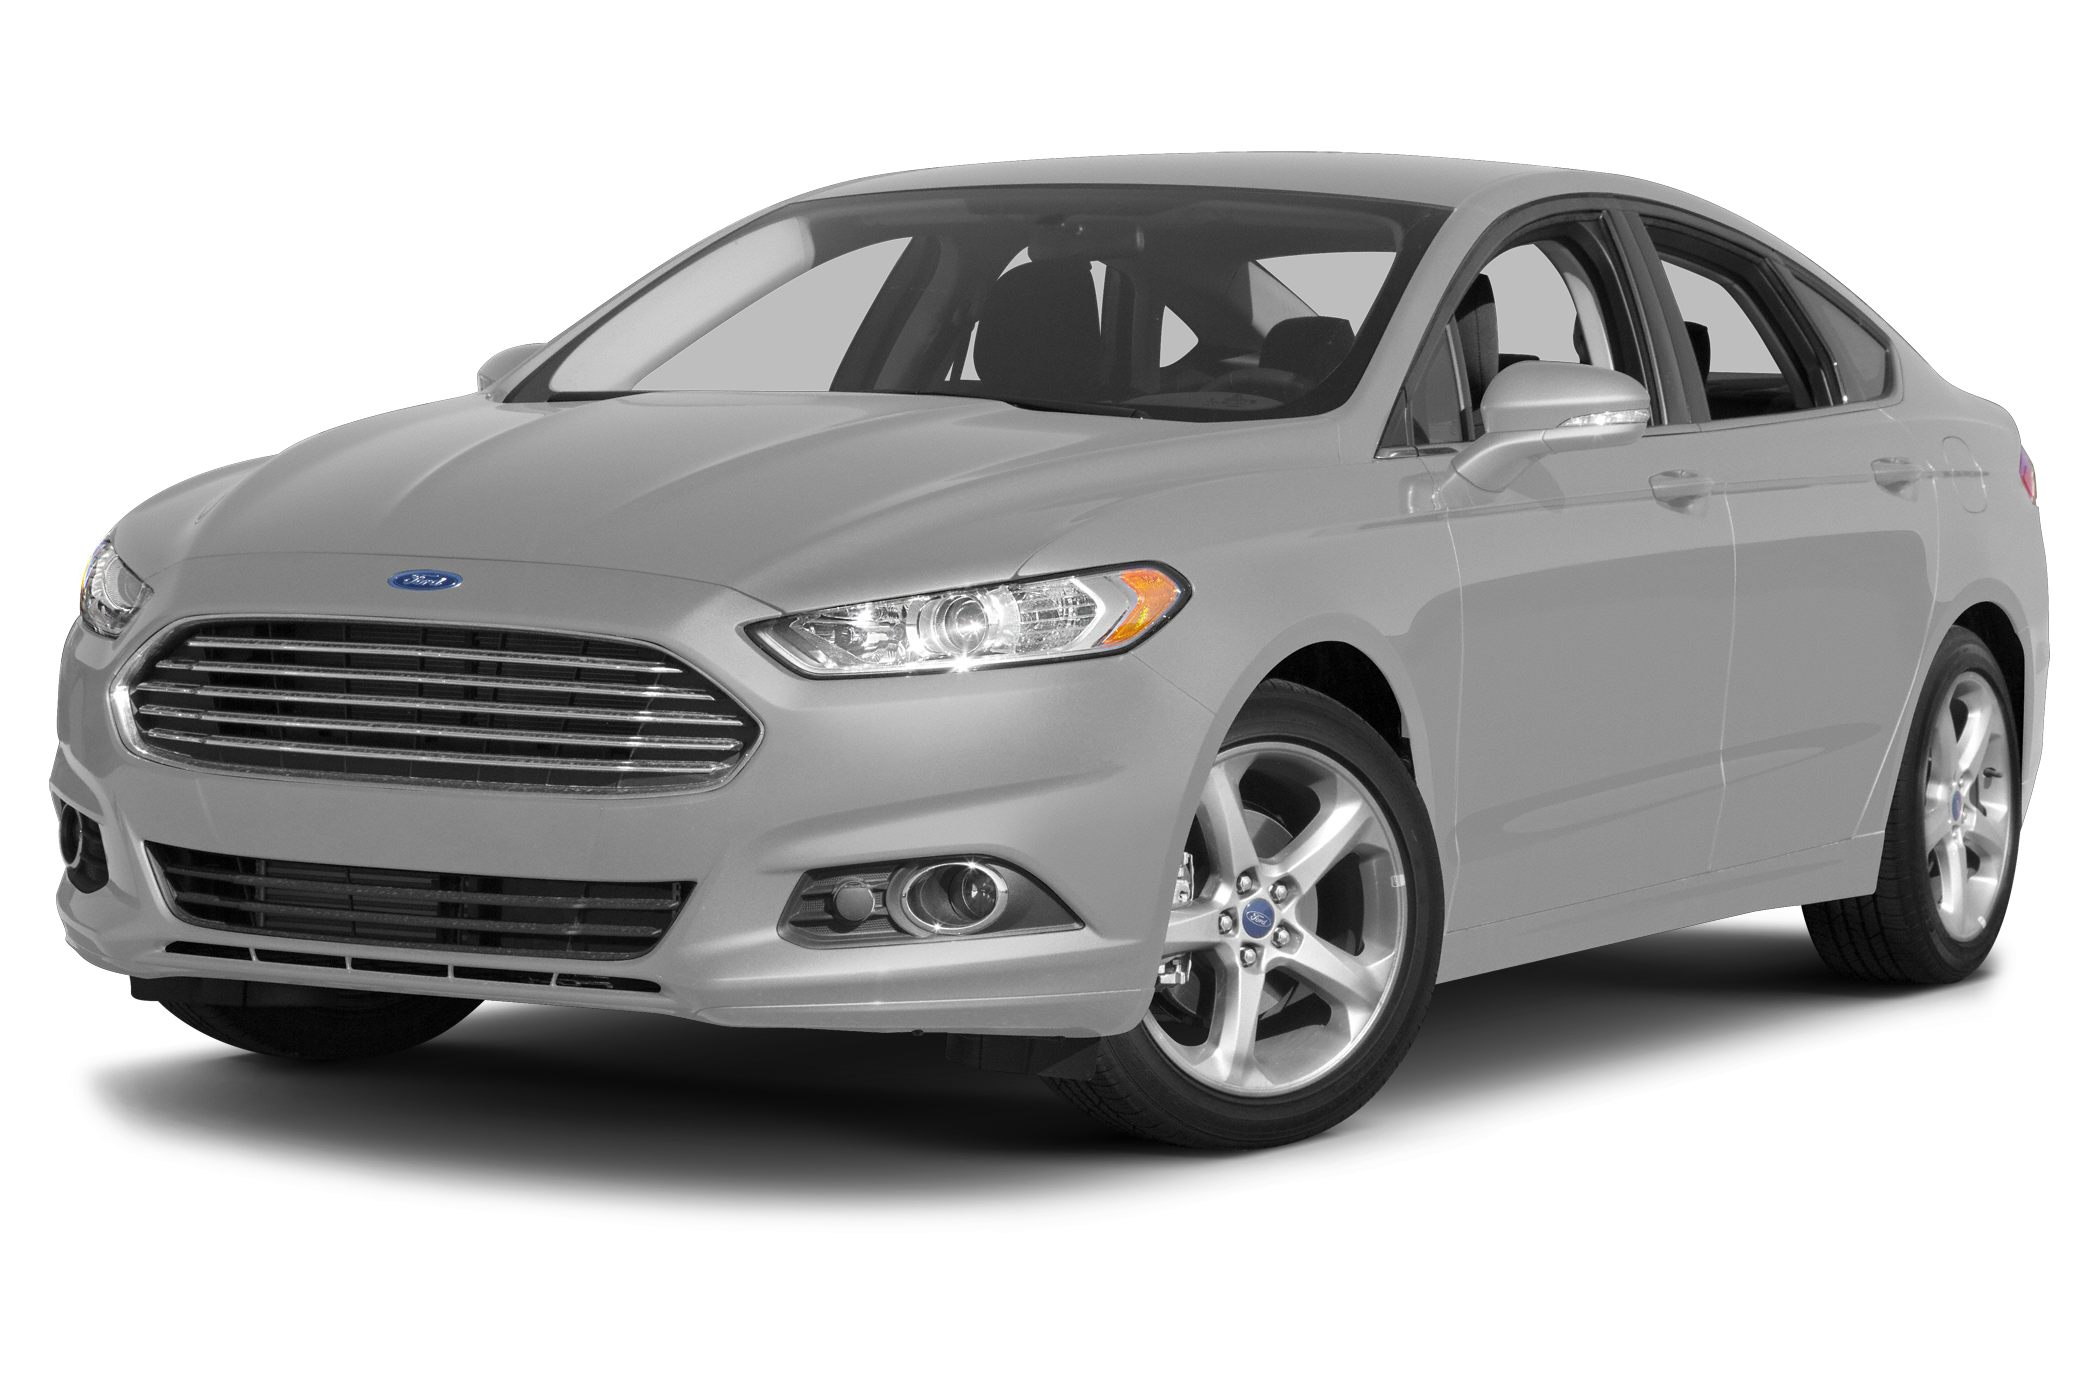 2015 Ford Fusion SE Sedan for sale in Gulfport for $34,310 with 5 miles.